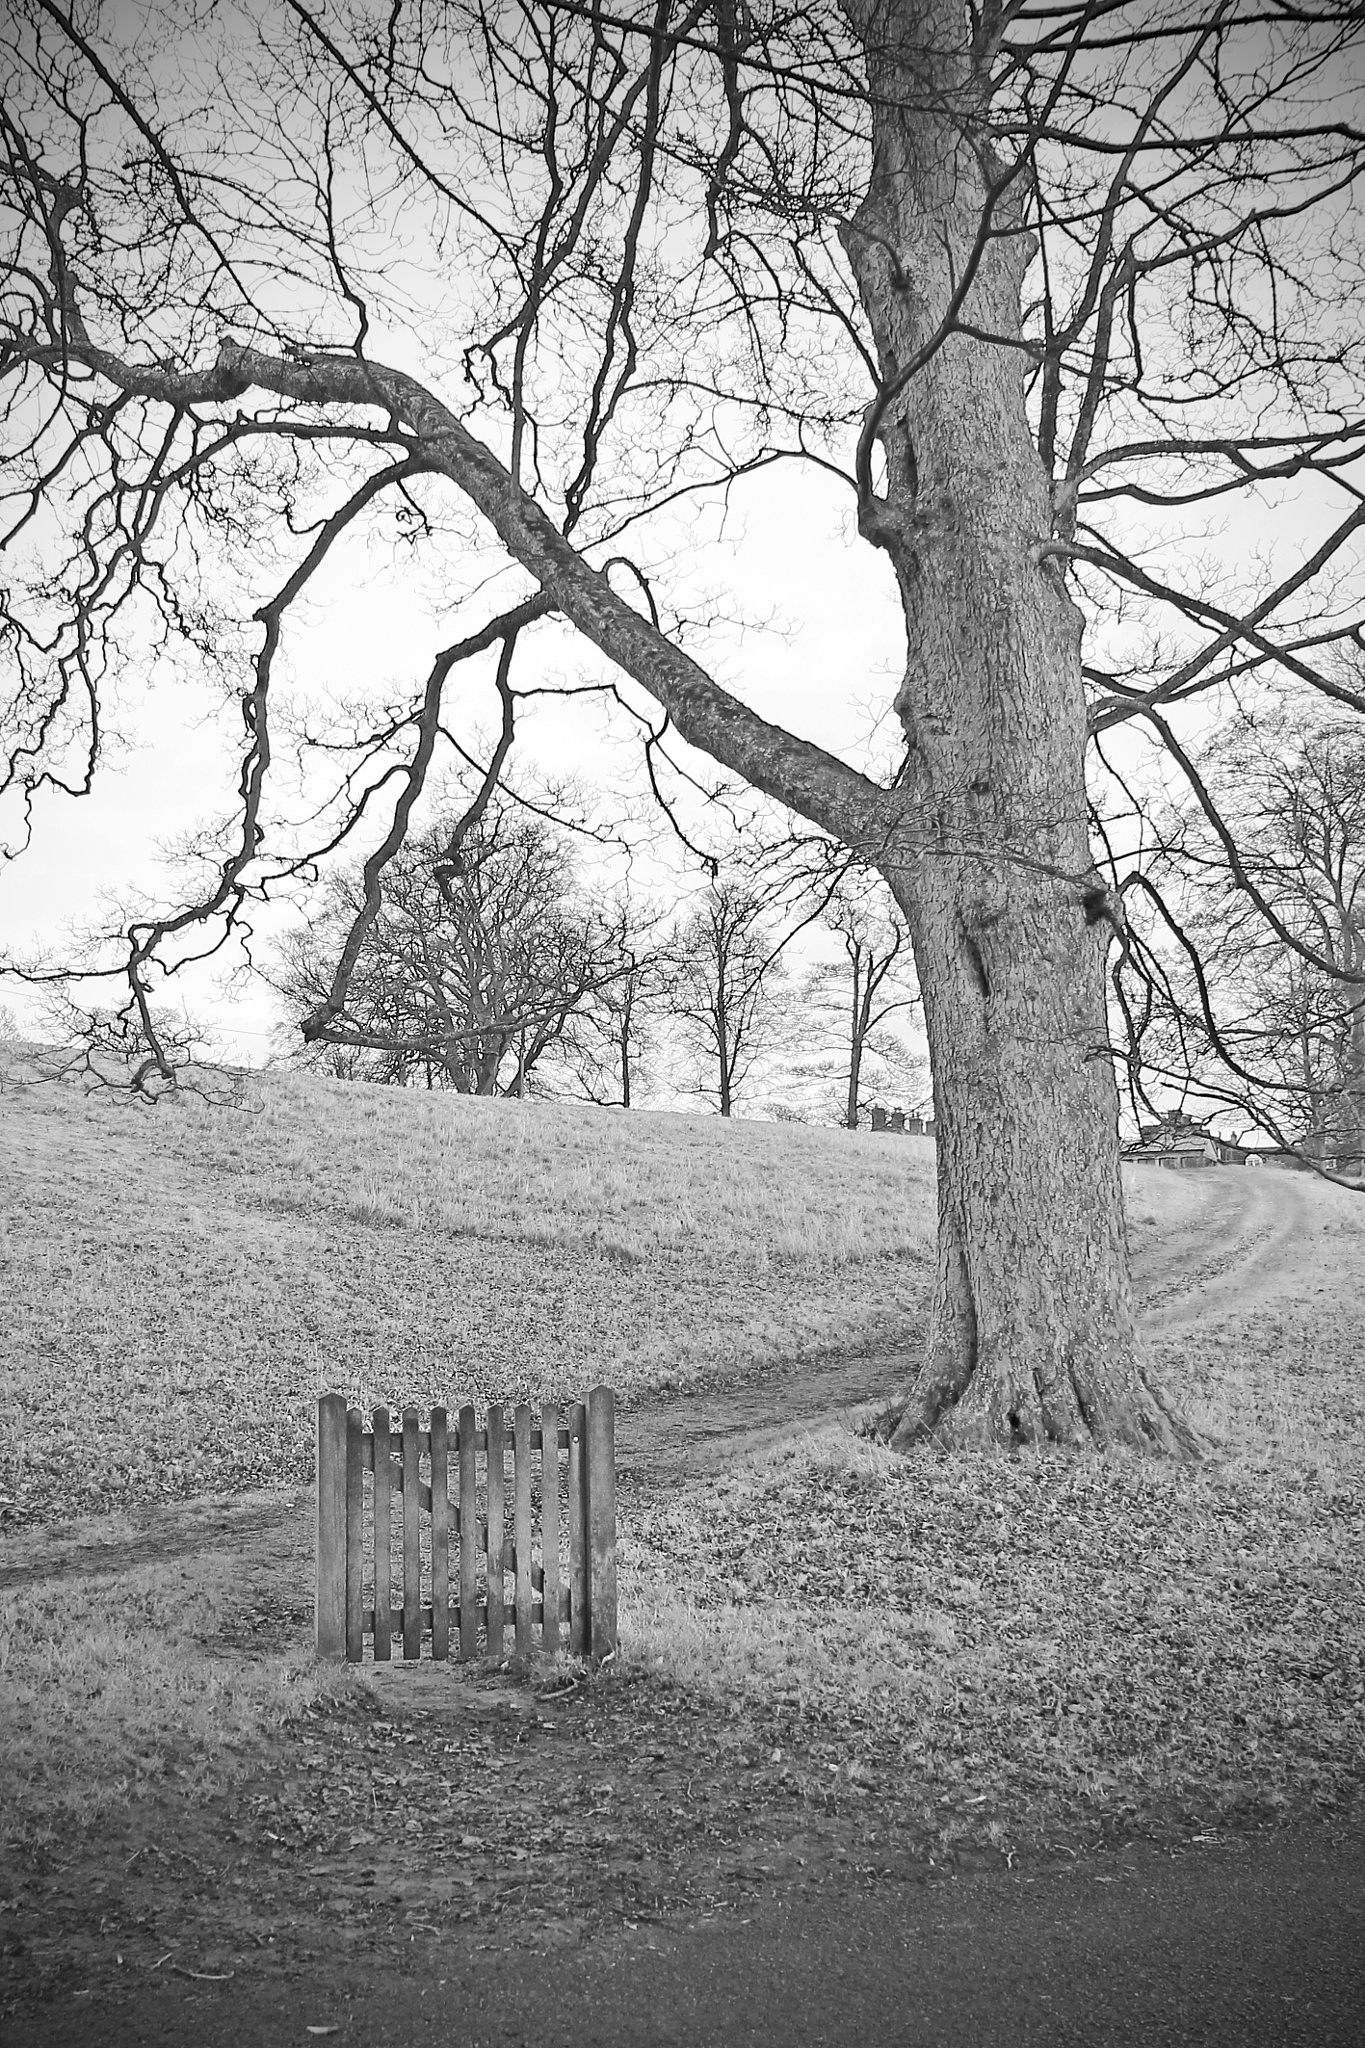 Gate in the park by David R Murphy